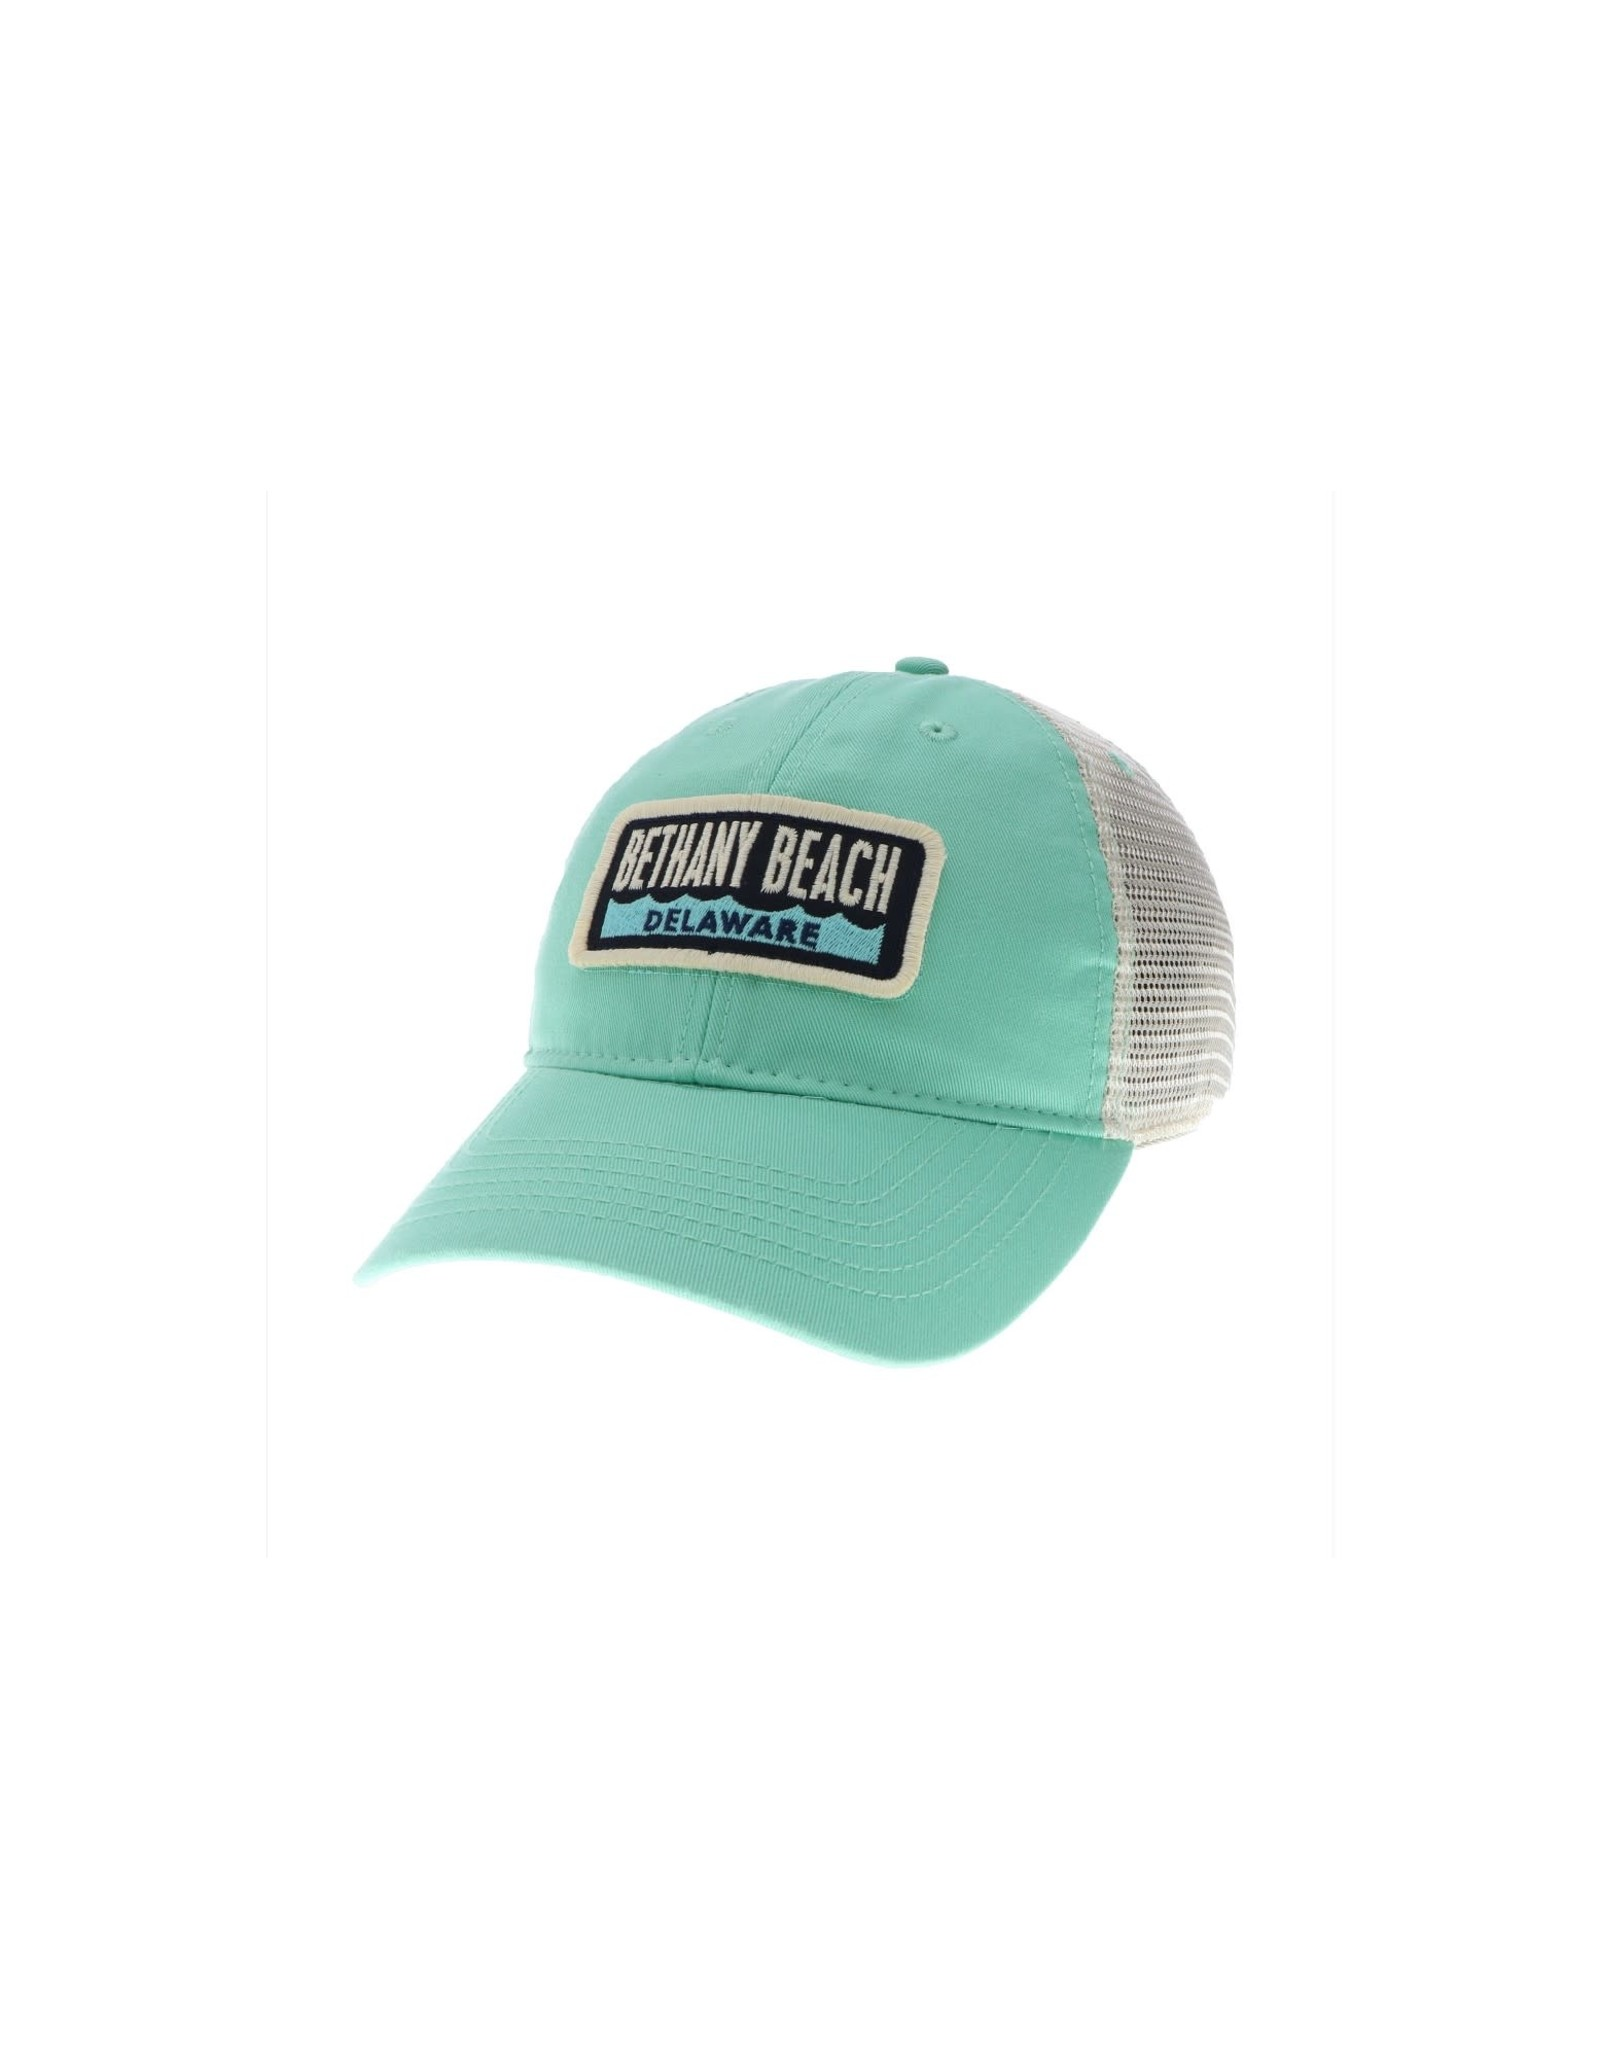 LEGACY ATHLETICS BETHANY LEGACY RELAXED TWILL TRUCKER HAT SPEARMINT WAVE